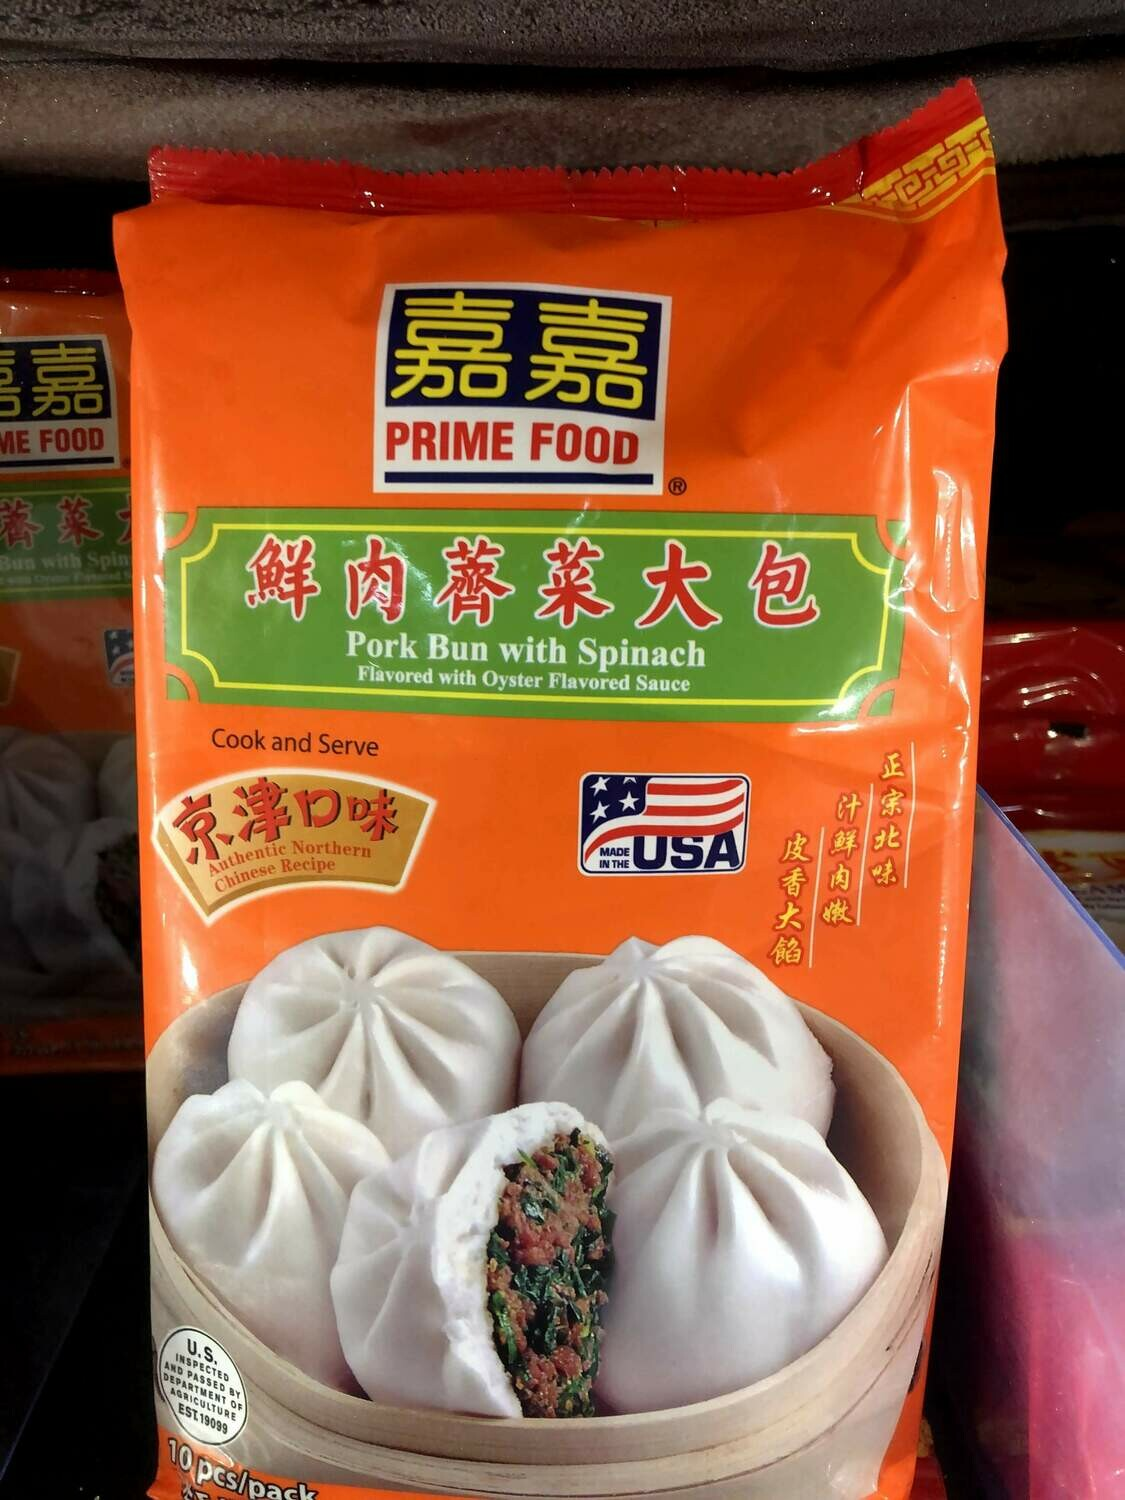 【RBF】Prime Food Pork Bun with Spinach Flavour with Oyster Flavored Sauce 嘉嘉 鲜肉荠菜大包30oz